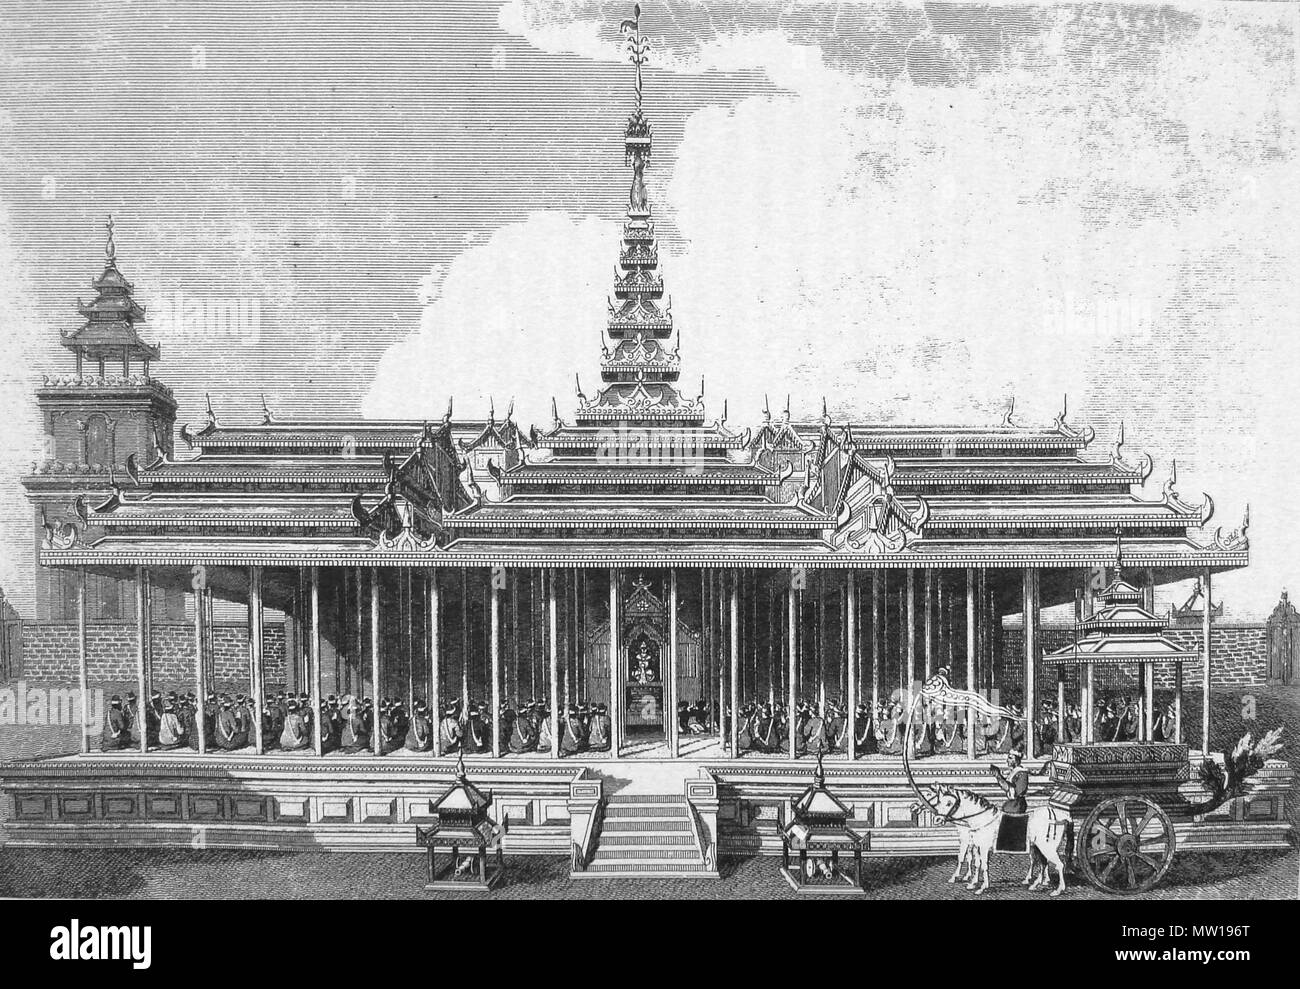 . English: View of the Imperial Court at Amarapura (Ummerapoora), and the Ceremony of Introduction.  English: Published November 1, 1799 by G. Nicol. Pall Mall & J. Wright, Piccadilly, London. . English: Drawn by Singey Bey, engraved by T. Medland. 41 Amarapura palace British Embassy Michael Symes 1795 - Stock Image